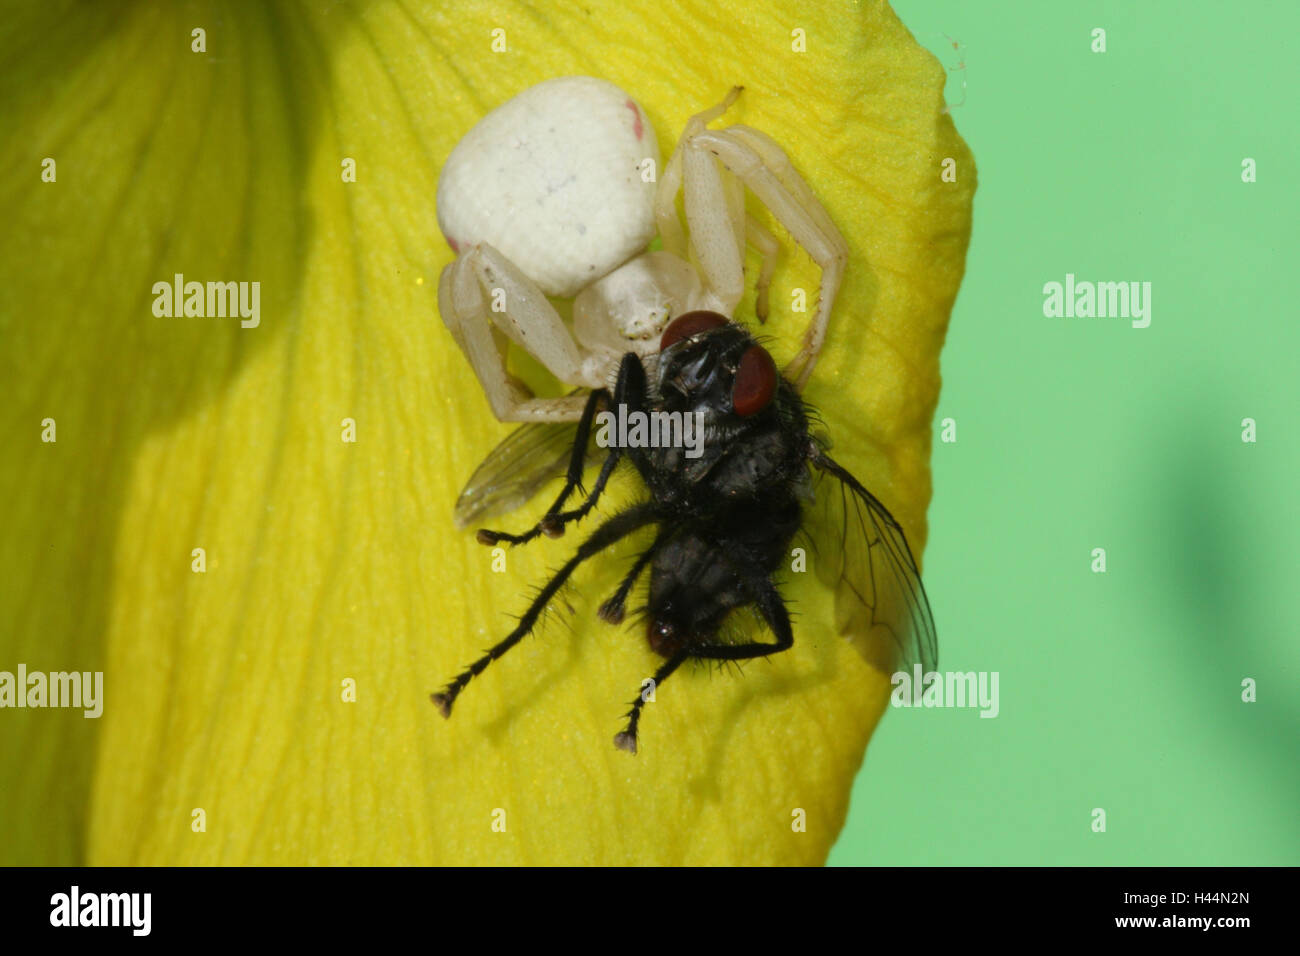 Variable Krabbe Pin, Misumena Vatia, Beute, fliegen, Stockbild